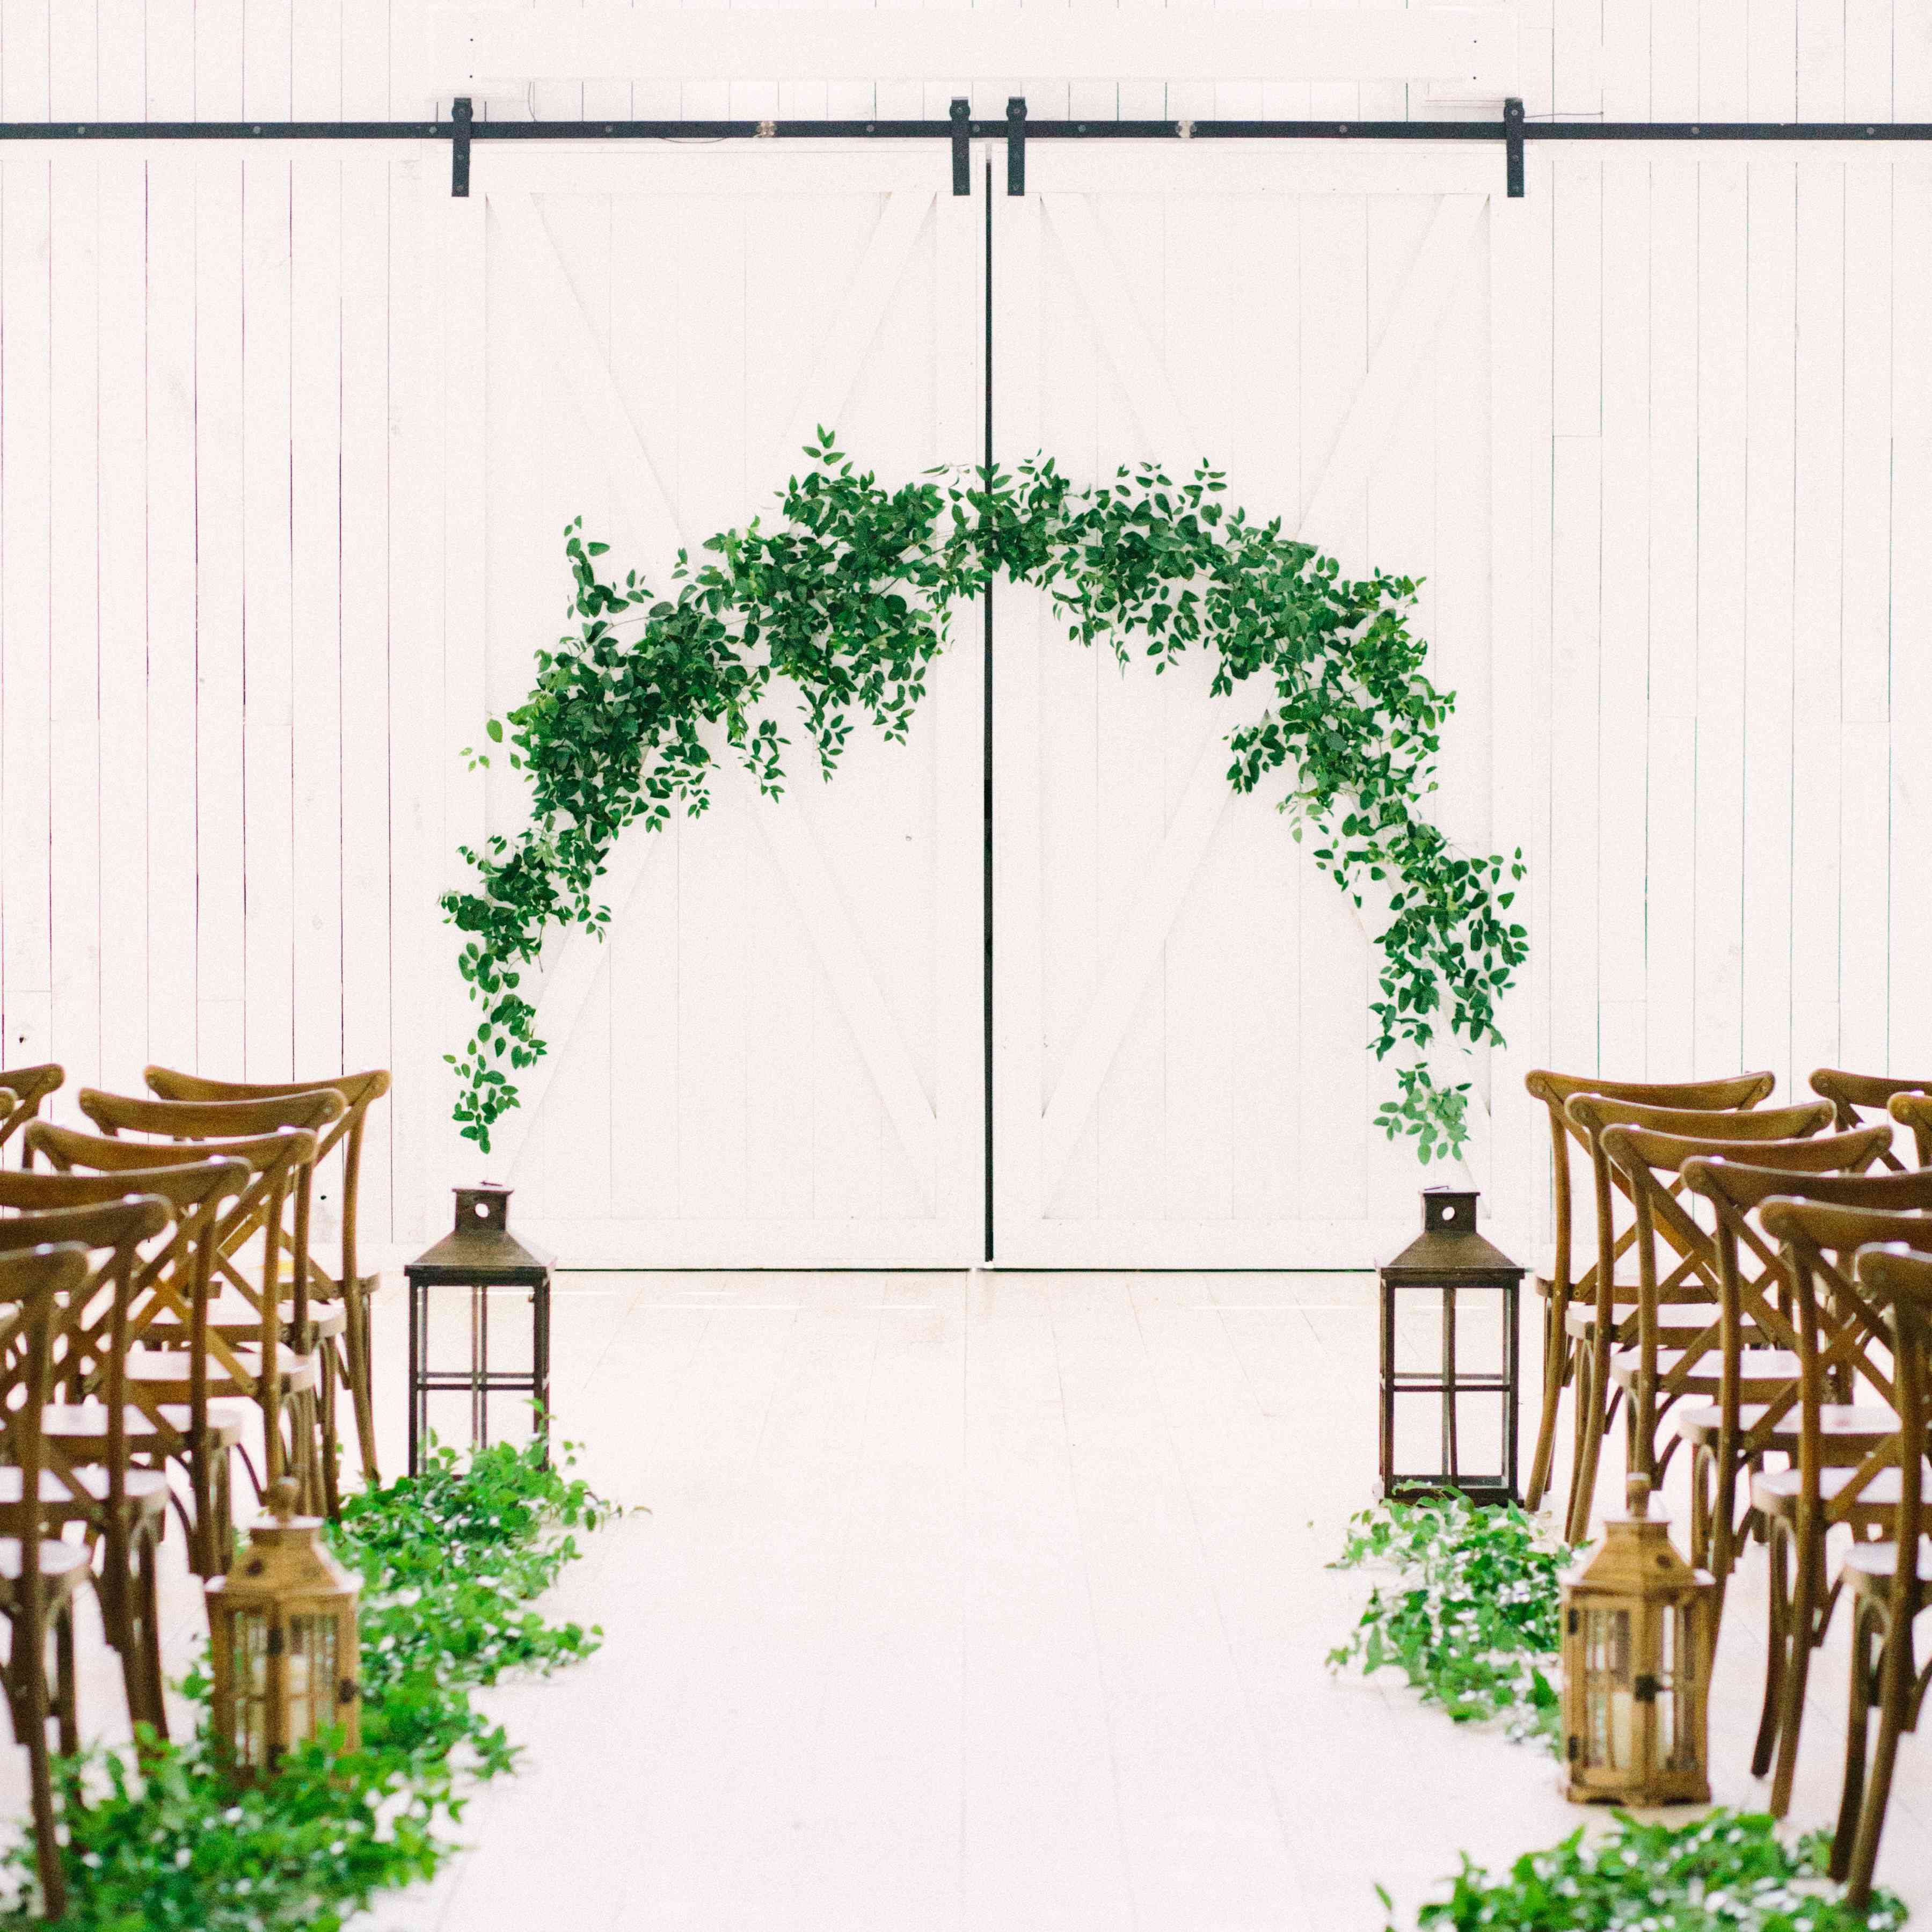 Wedding aisle with greenery and lanterns on each side of the floor and greenery arch at the end